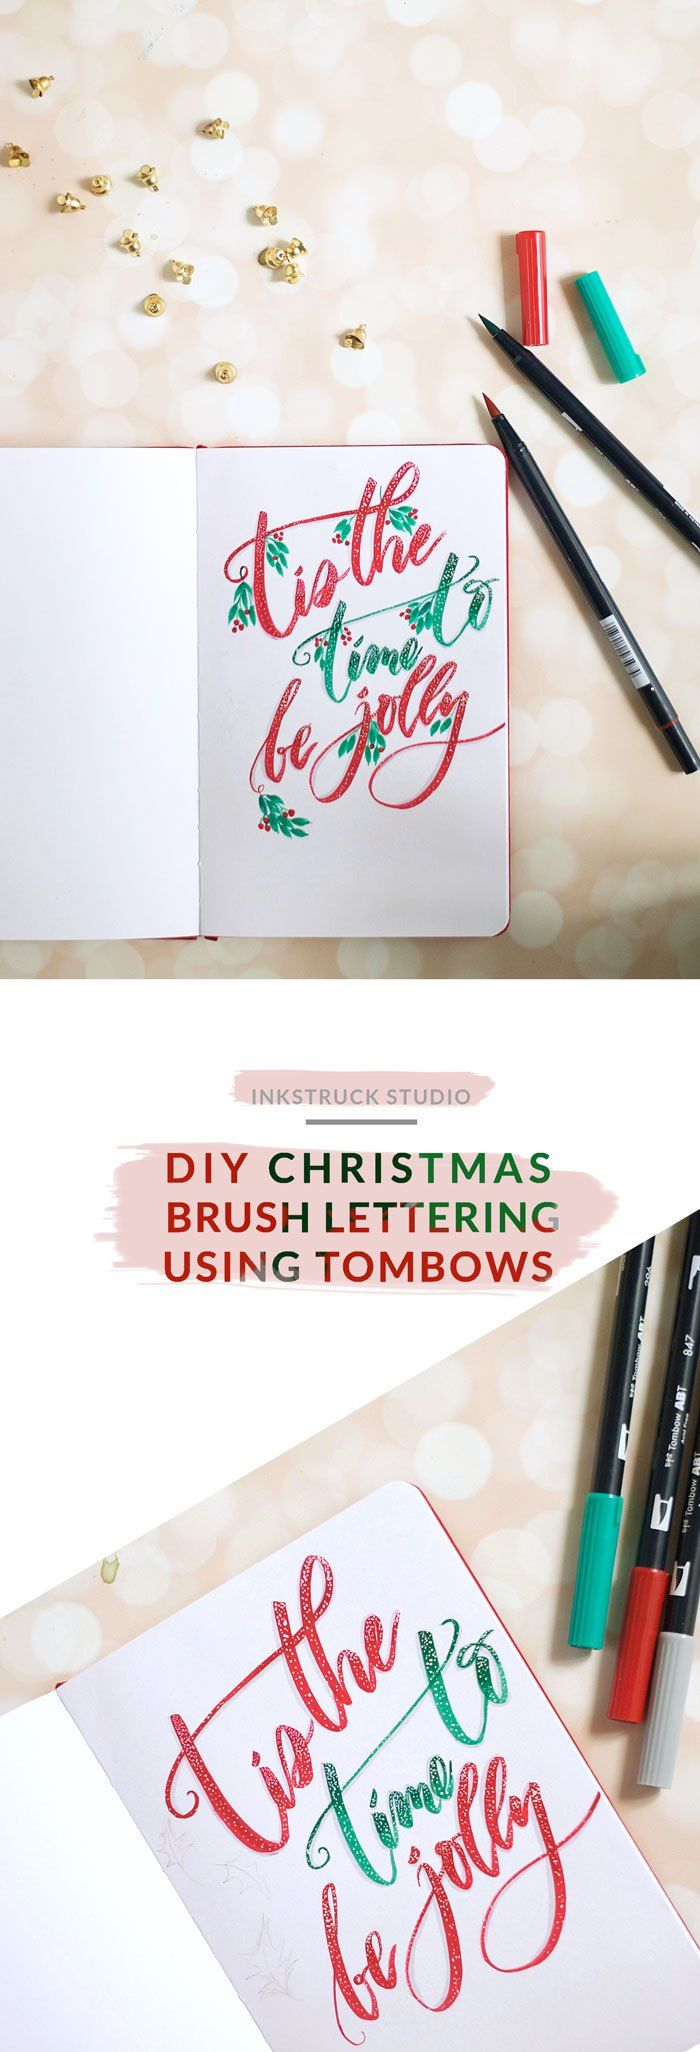 Best ideas about holiday crafts on pinterest fisher